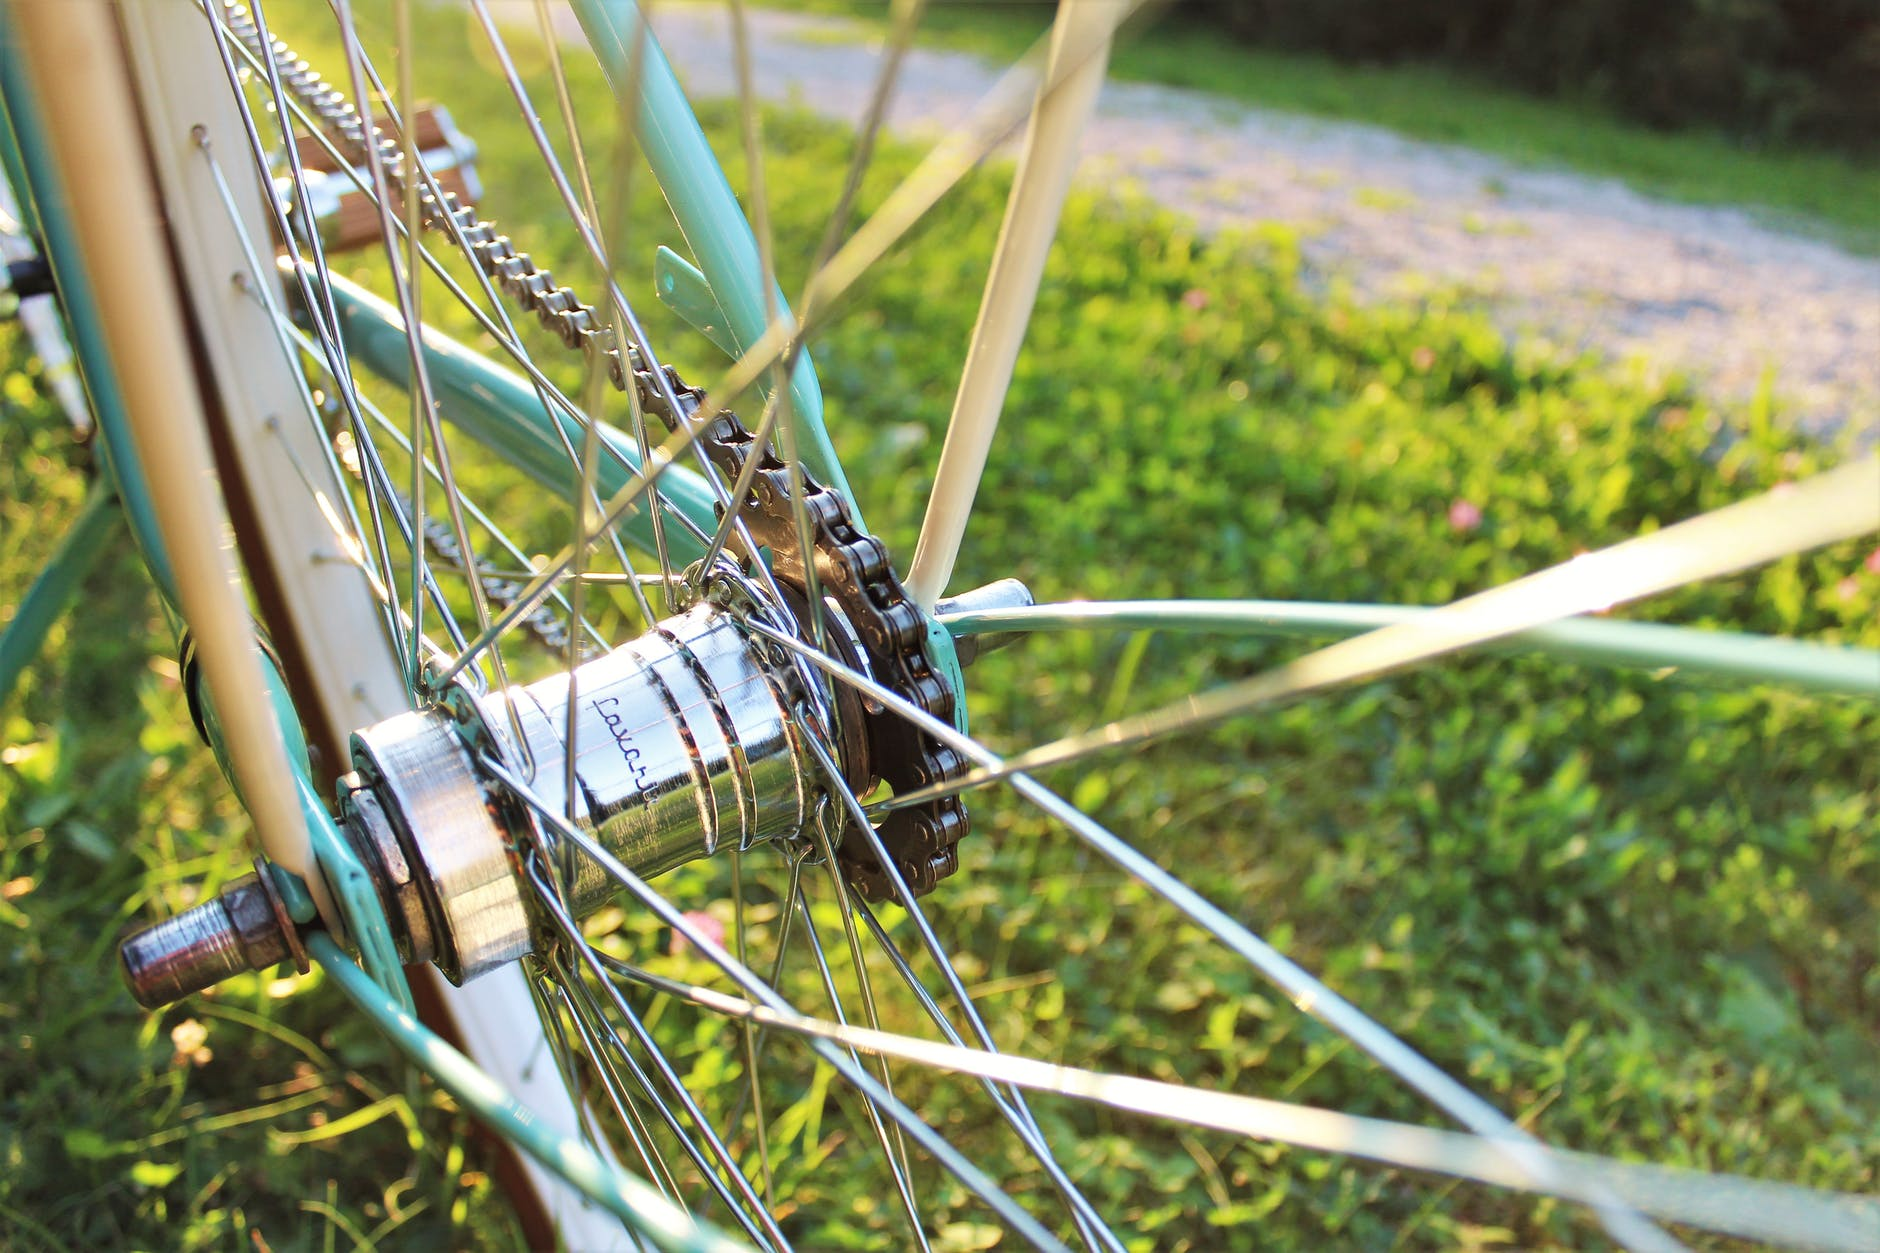 Hub and spokes of a bicycle wheel.